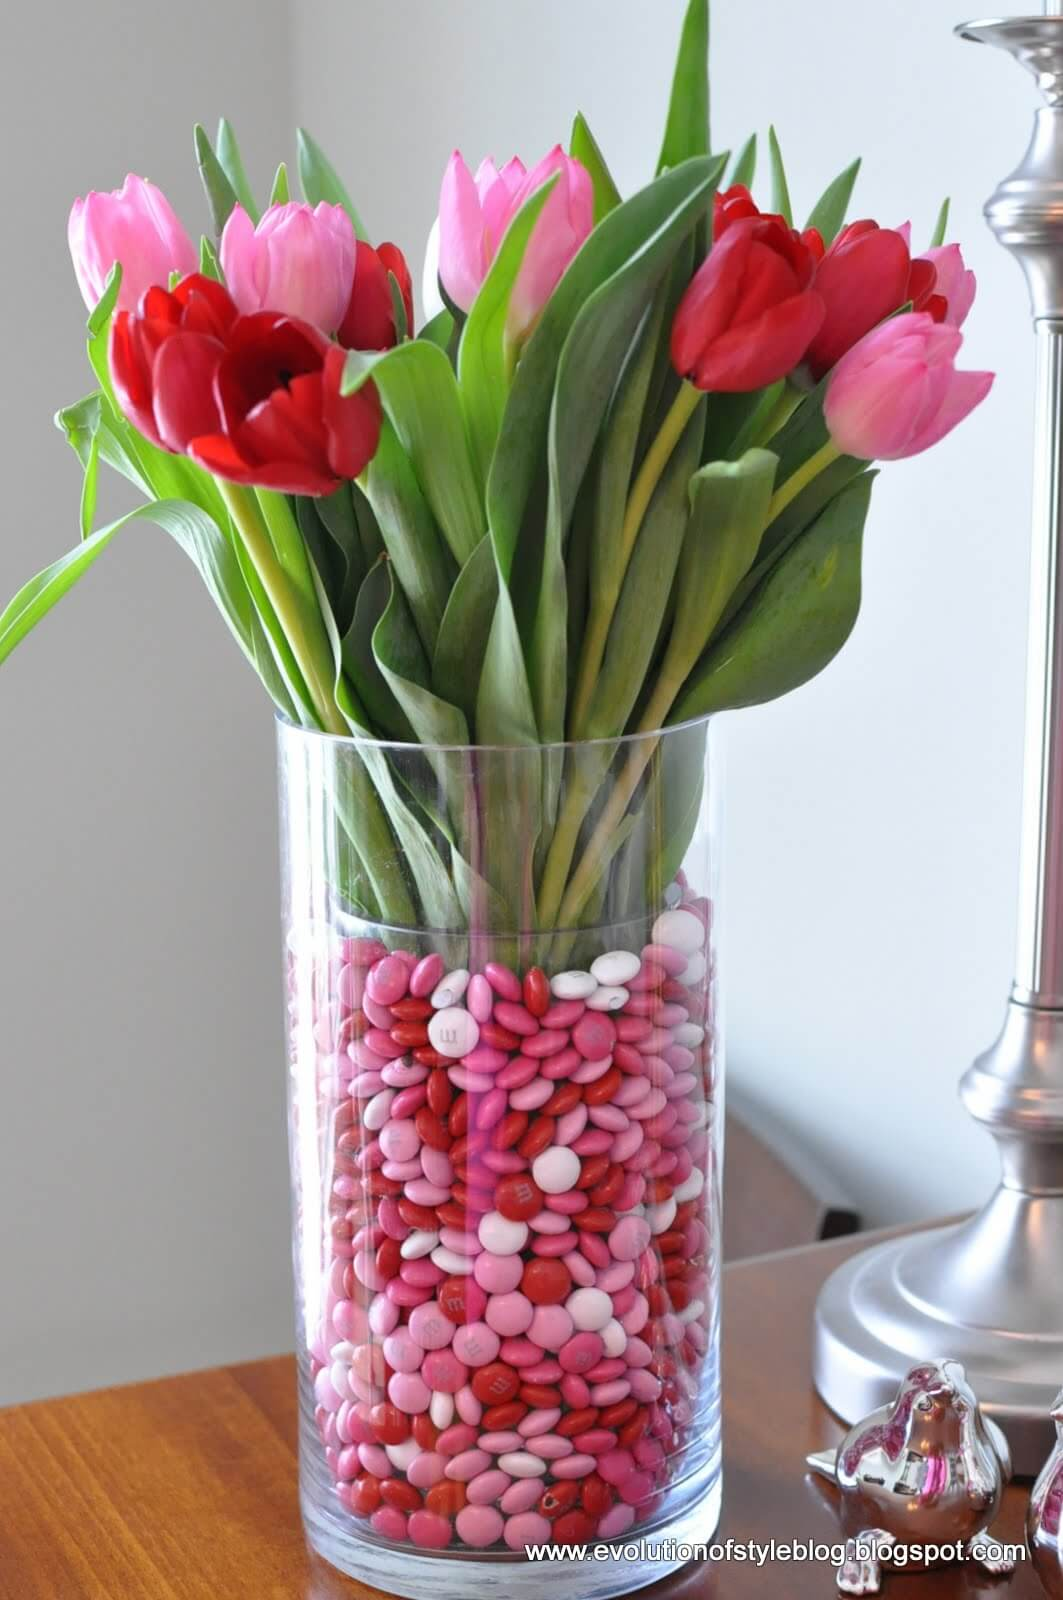 Tulips + M&Ms = The Perfect Arrangement